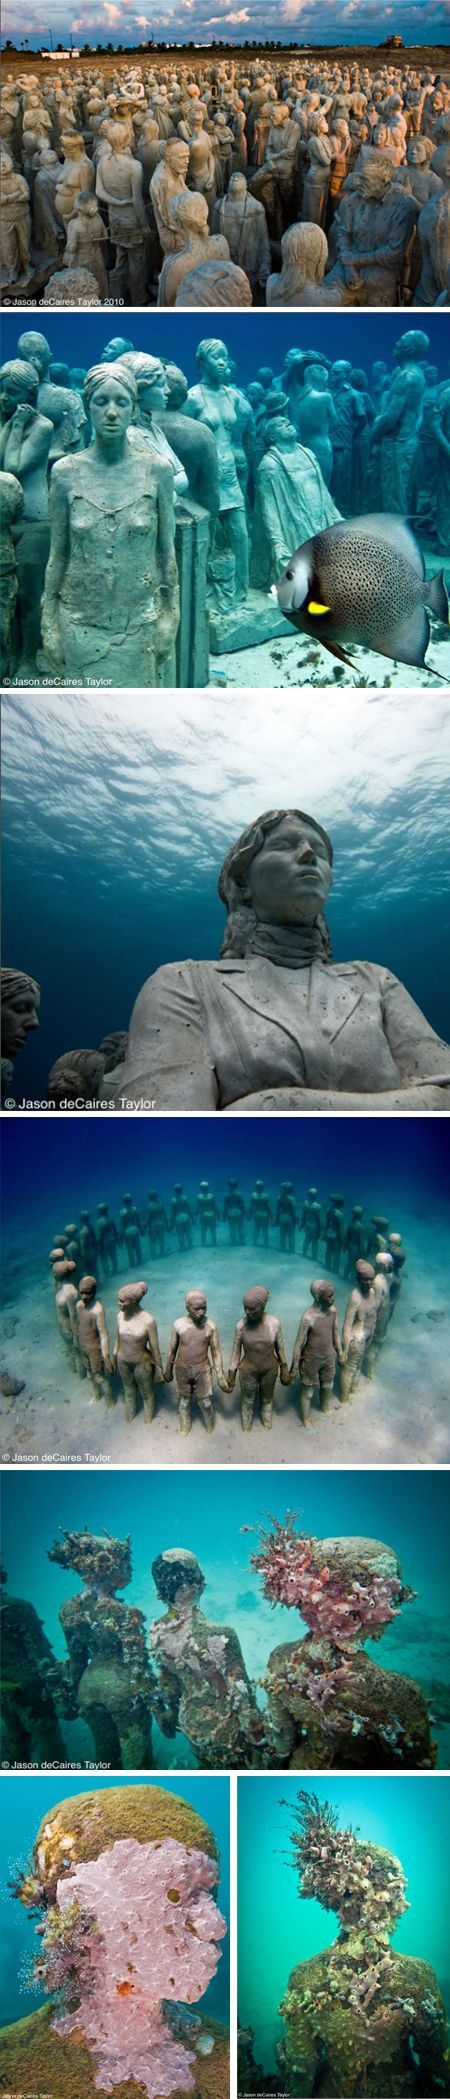 Jason Decaires Taylor's underwater Cancun exhibit. When sustainable art becomes part of nature itself.